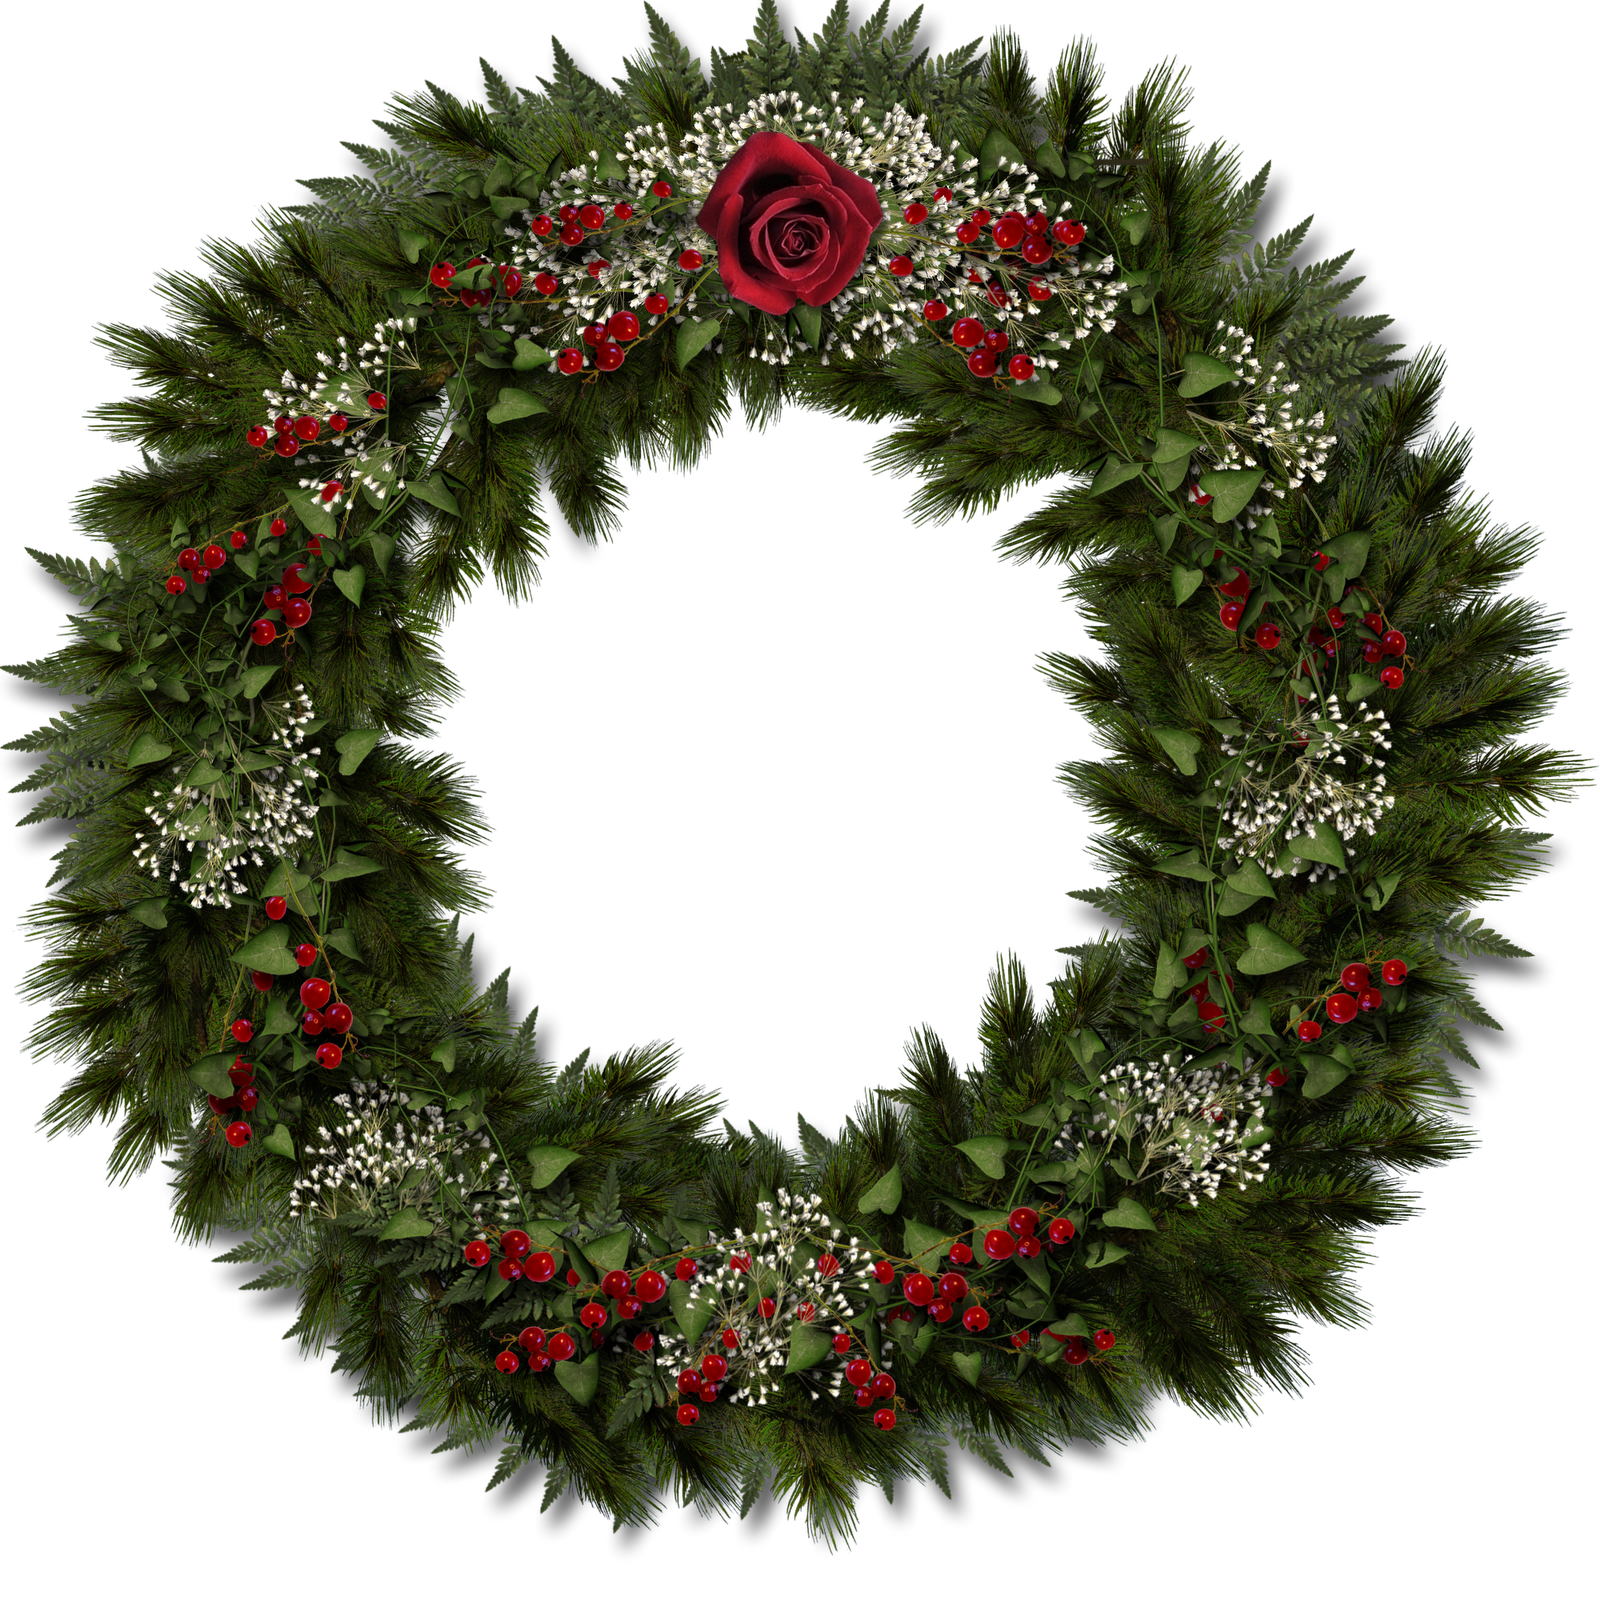 Christmas pine garland icon png. Wreath transparent pictures free